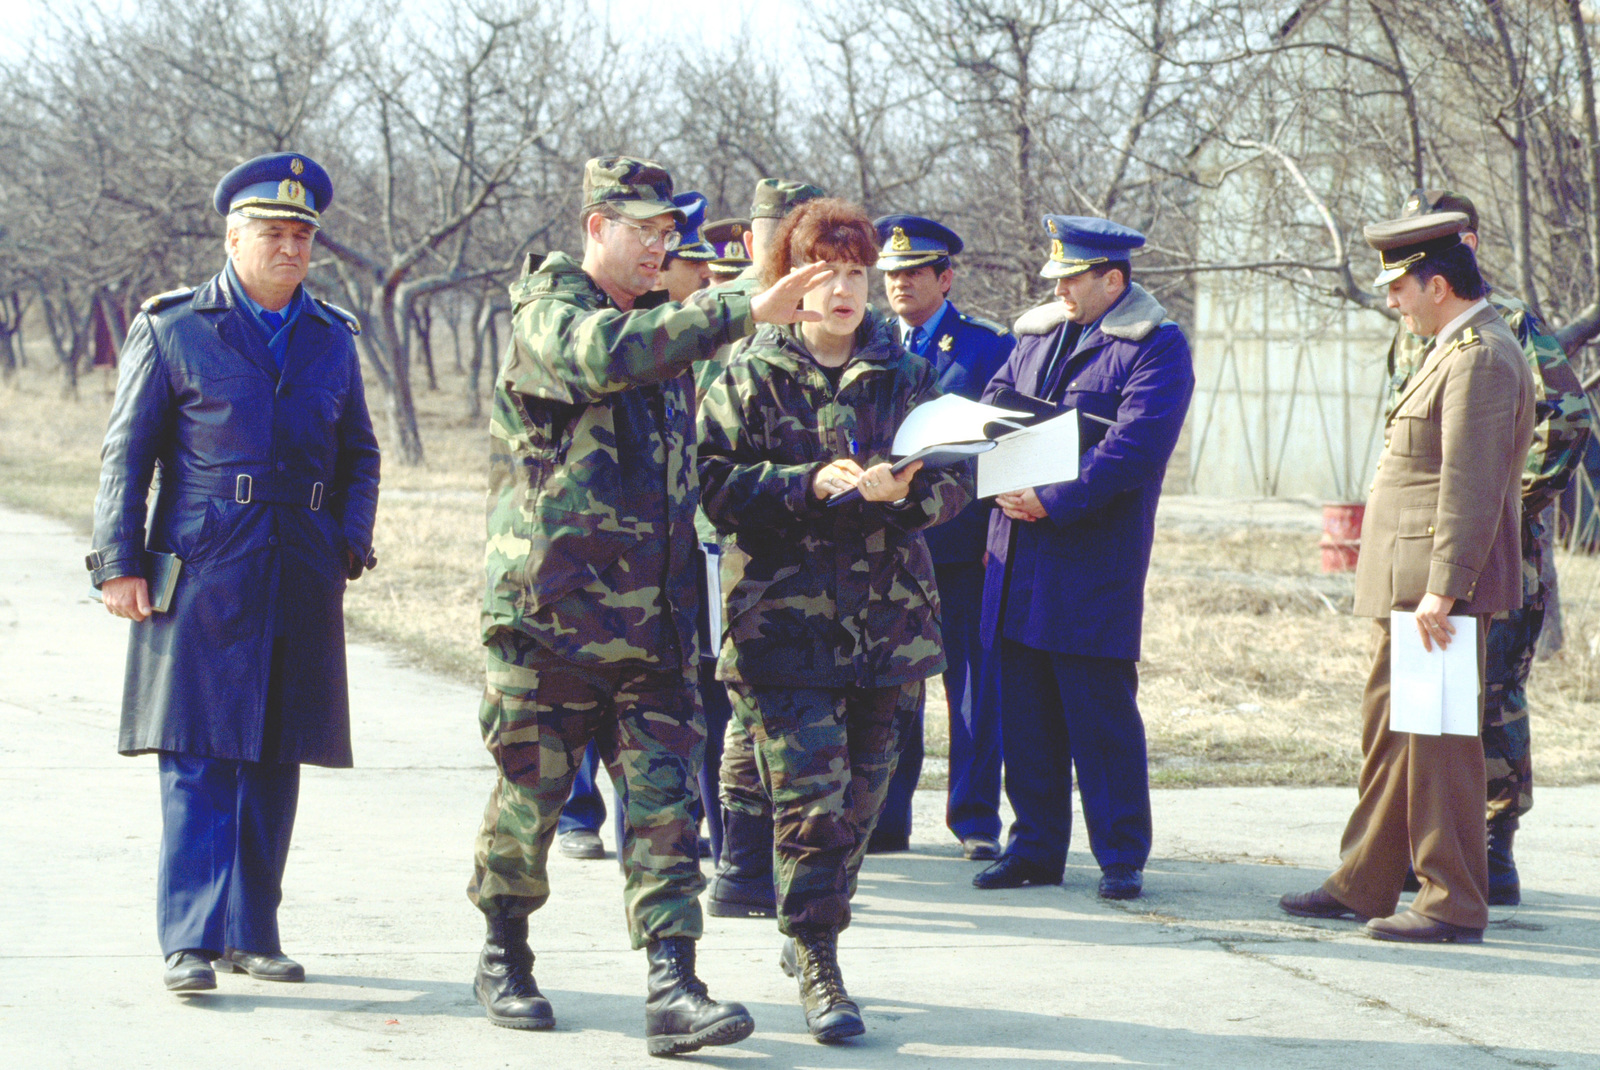 MASTER Sergeant Michele Helms (right), 16th Air Force, Logistics, Aviano Air Base, Italy discusses the airfield survey checklist with MASTER SGT. Ed. LaRosa, 616th Regional Planning Flight Services at Timisoara Air Base. They are members of the airfield survey team who, at the request of Romanian officials, will determine if the Romanian bases meet US and NATO standards for use in operations and exercises